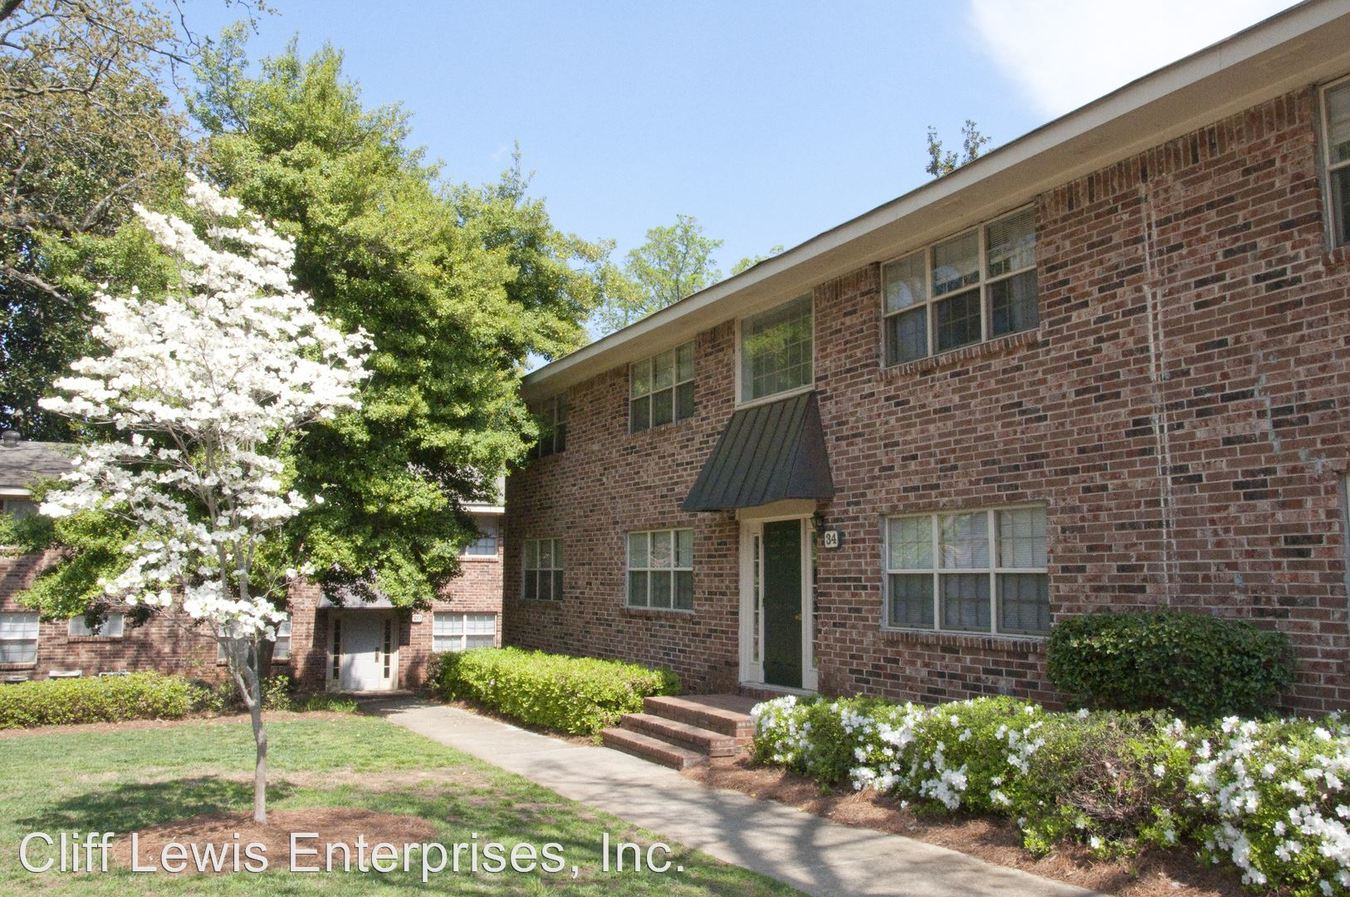 1 Bedroom 1 Bathroom Apartment for rent at 329 Dearing Street in Athens, GA